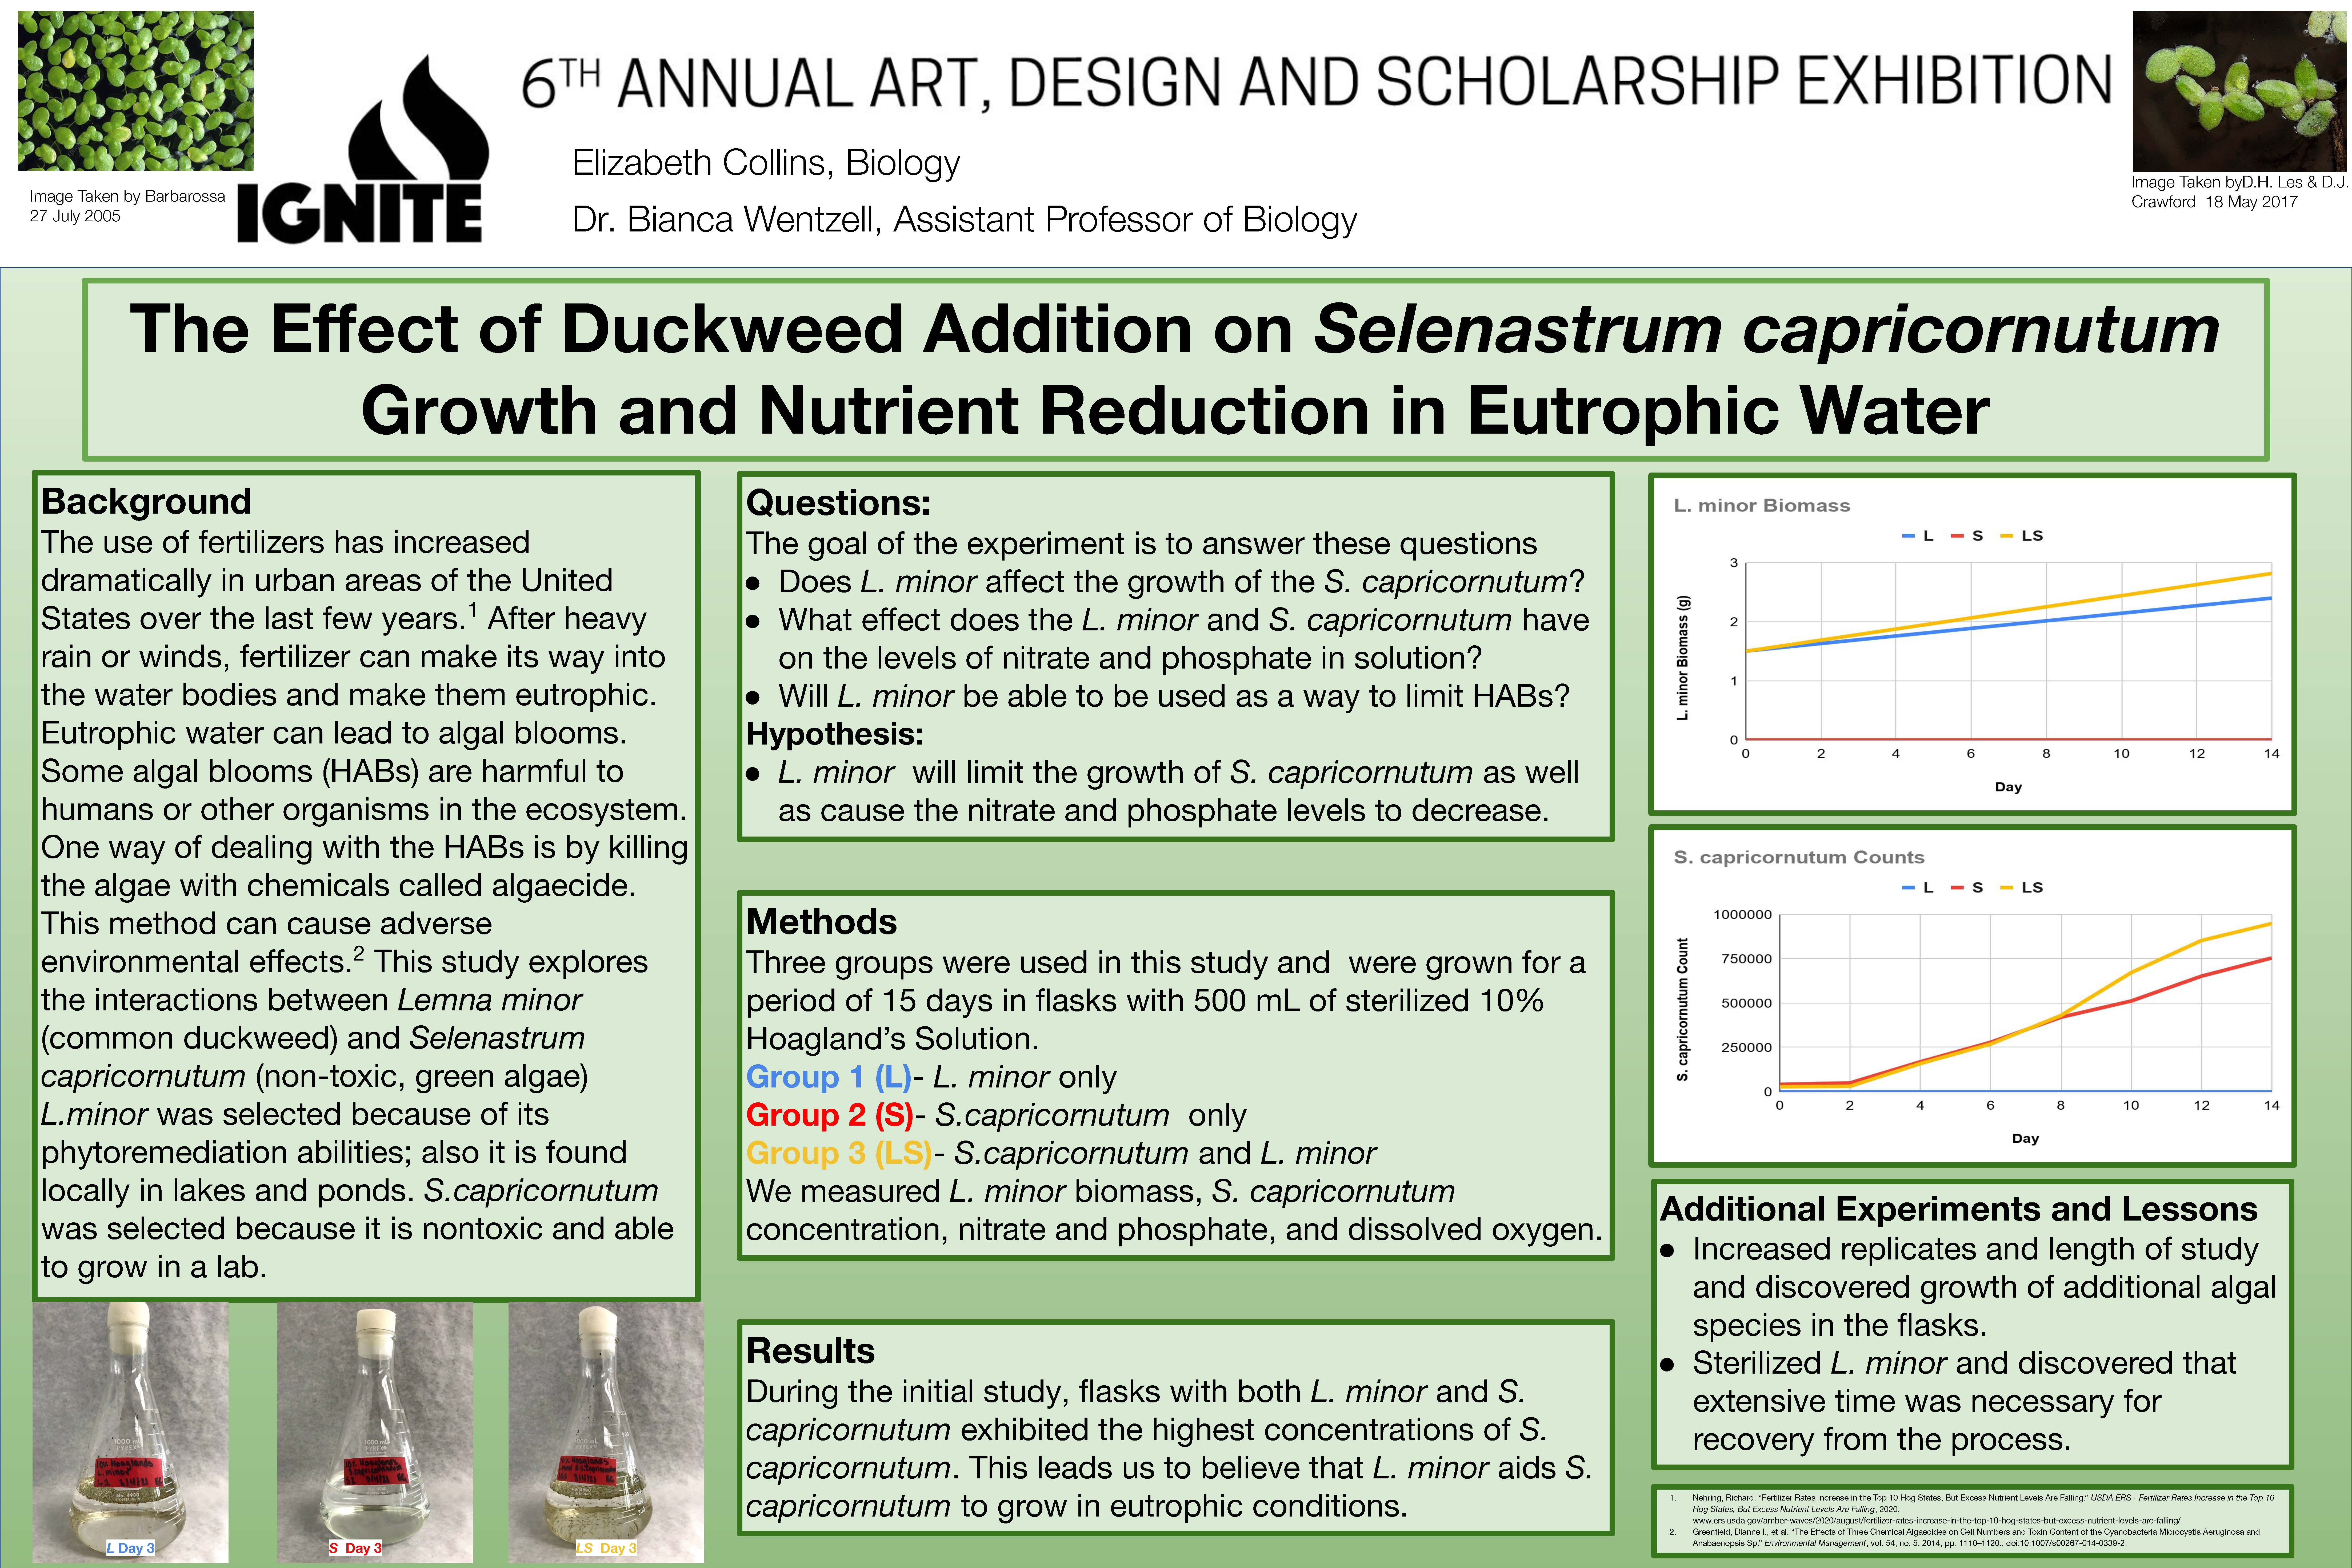 _Collins The Effect of Duckweed Addition on Selenastrum capricornutum Growth and Nutrient Reduction in Eutrophic Water.jpg